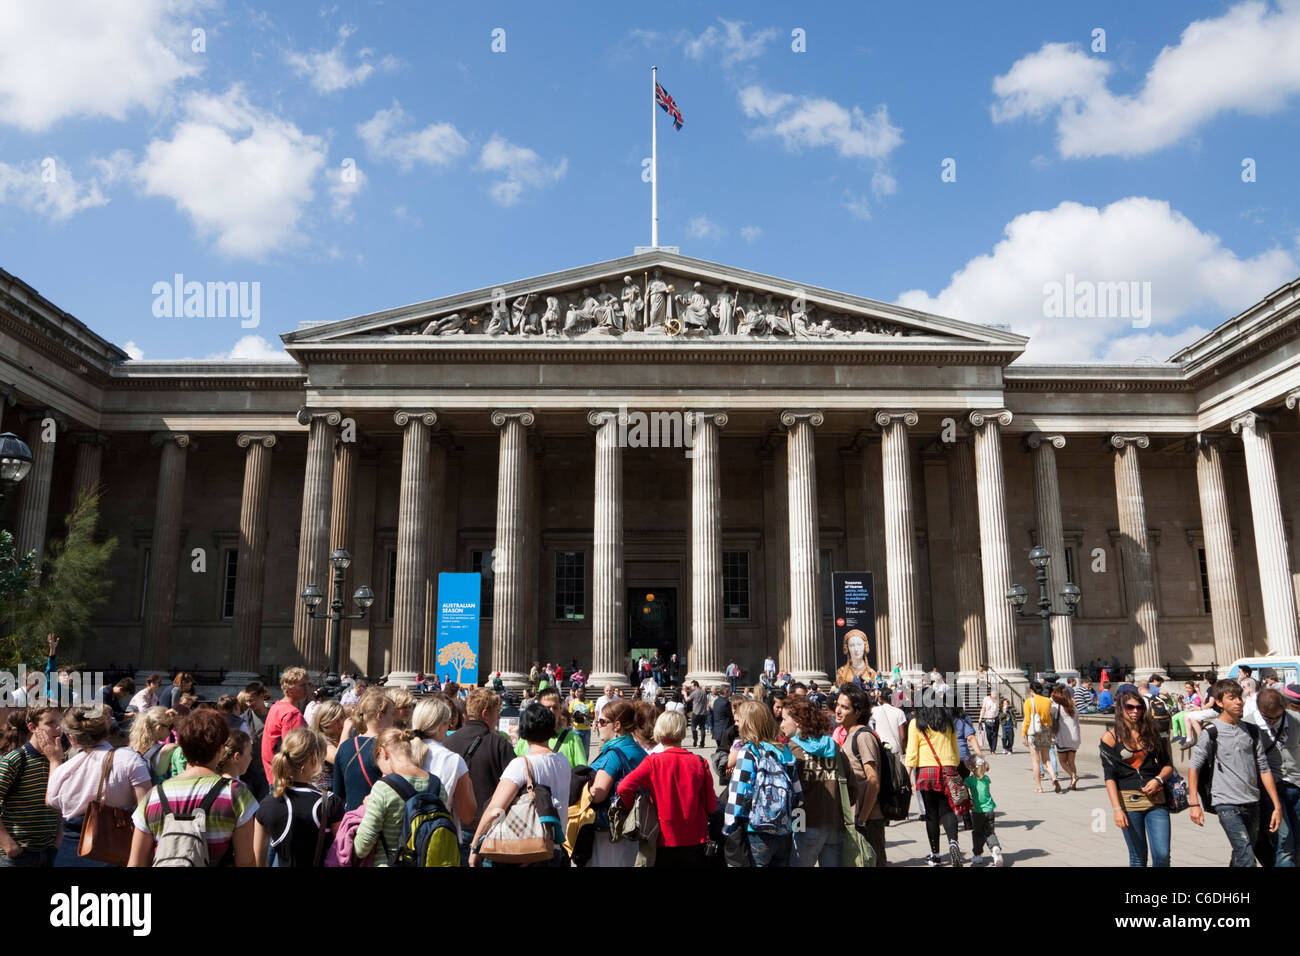 The British Museum, Great Russell Street, London, England, UK - Stock Image